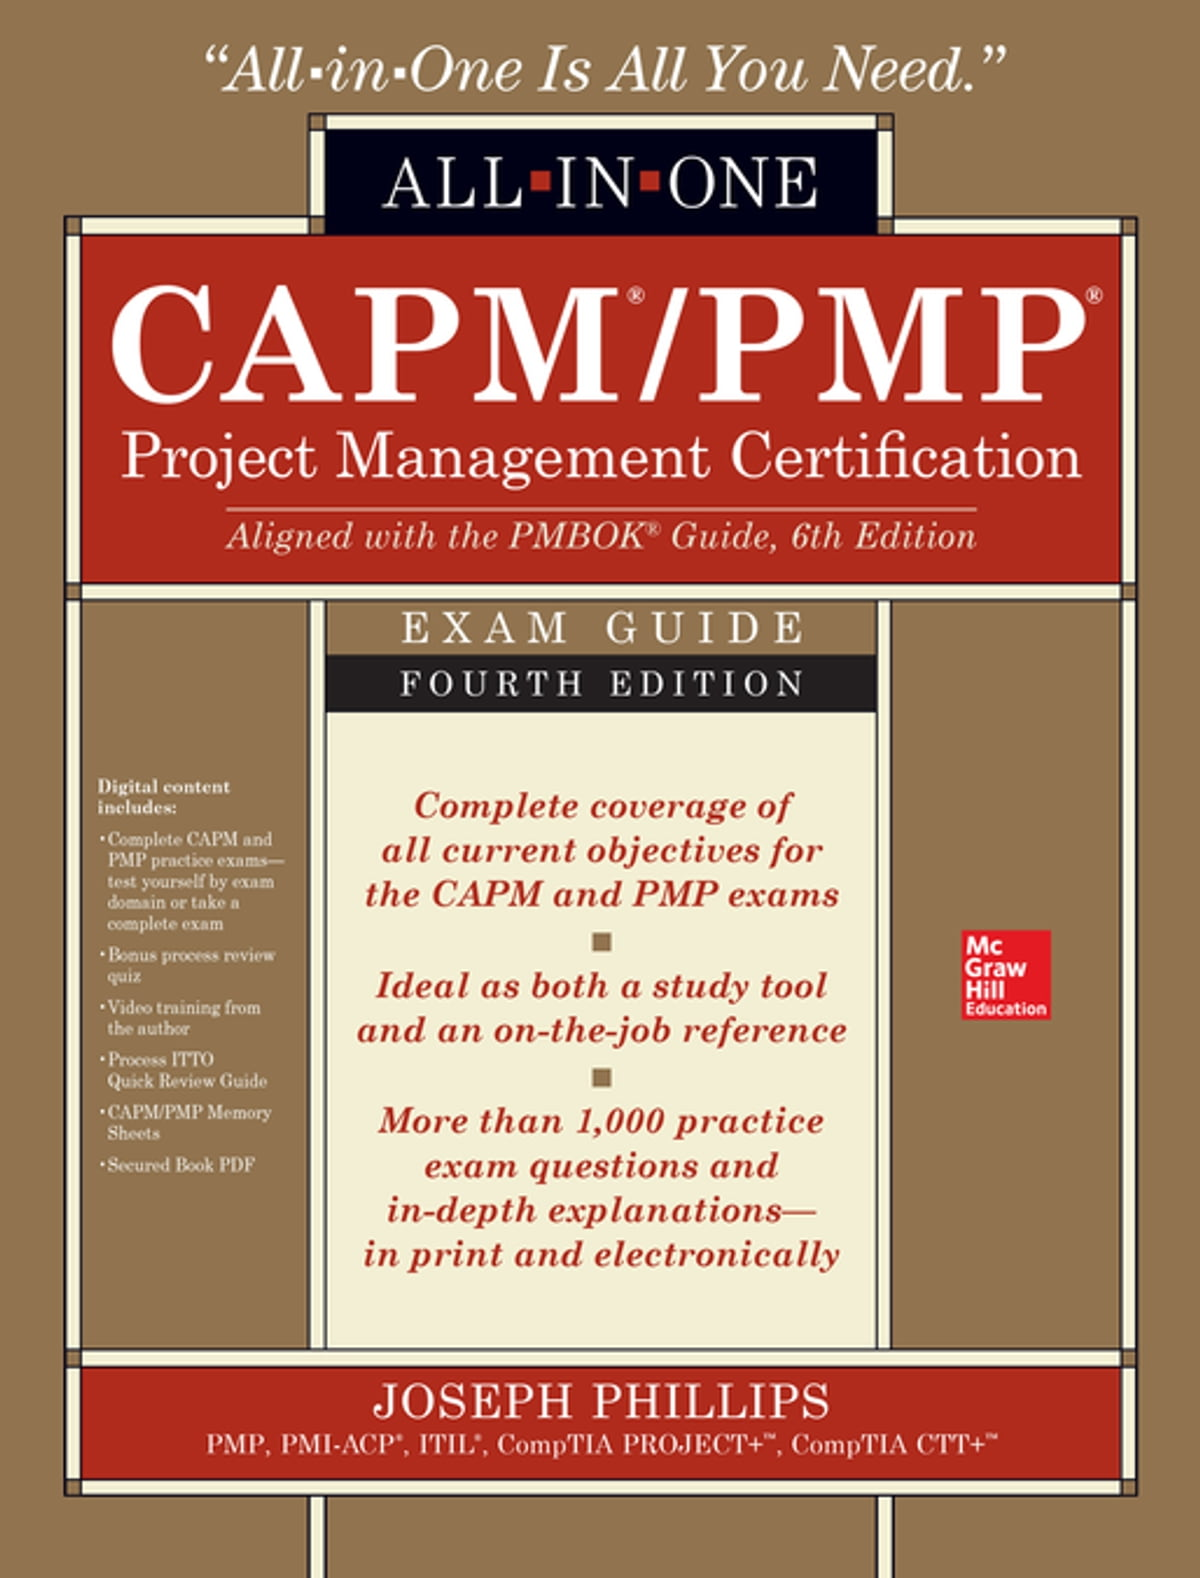 CAPM/PMP Project Management Certification All-In-One Exam Guide, Fourth  Edition eBook by Joseph Phillips - 9781259861598 | Rakuten Kobo